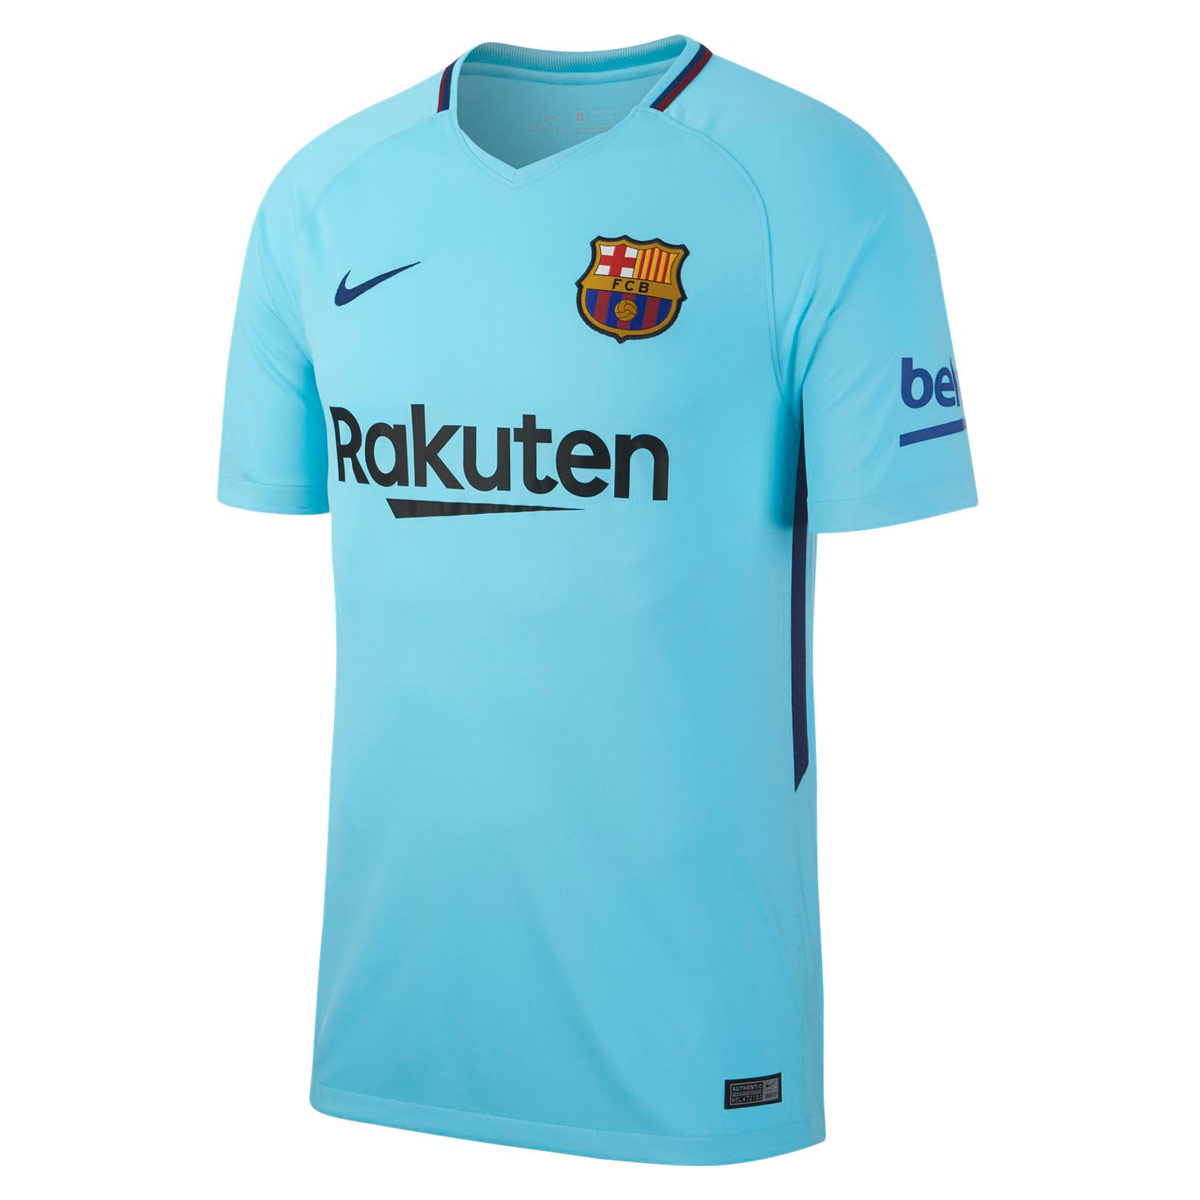 Nike Breathe FC Barcelona Stadium Jersey - T-Shirts for Men - Blue ... 6dd625a91